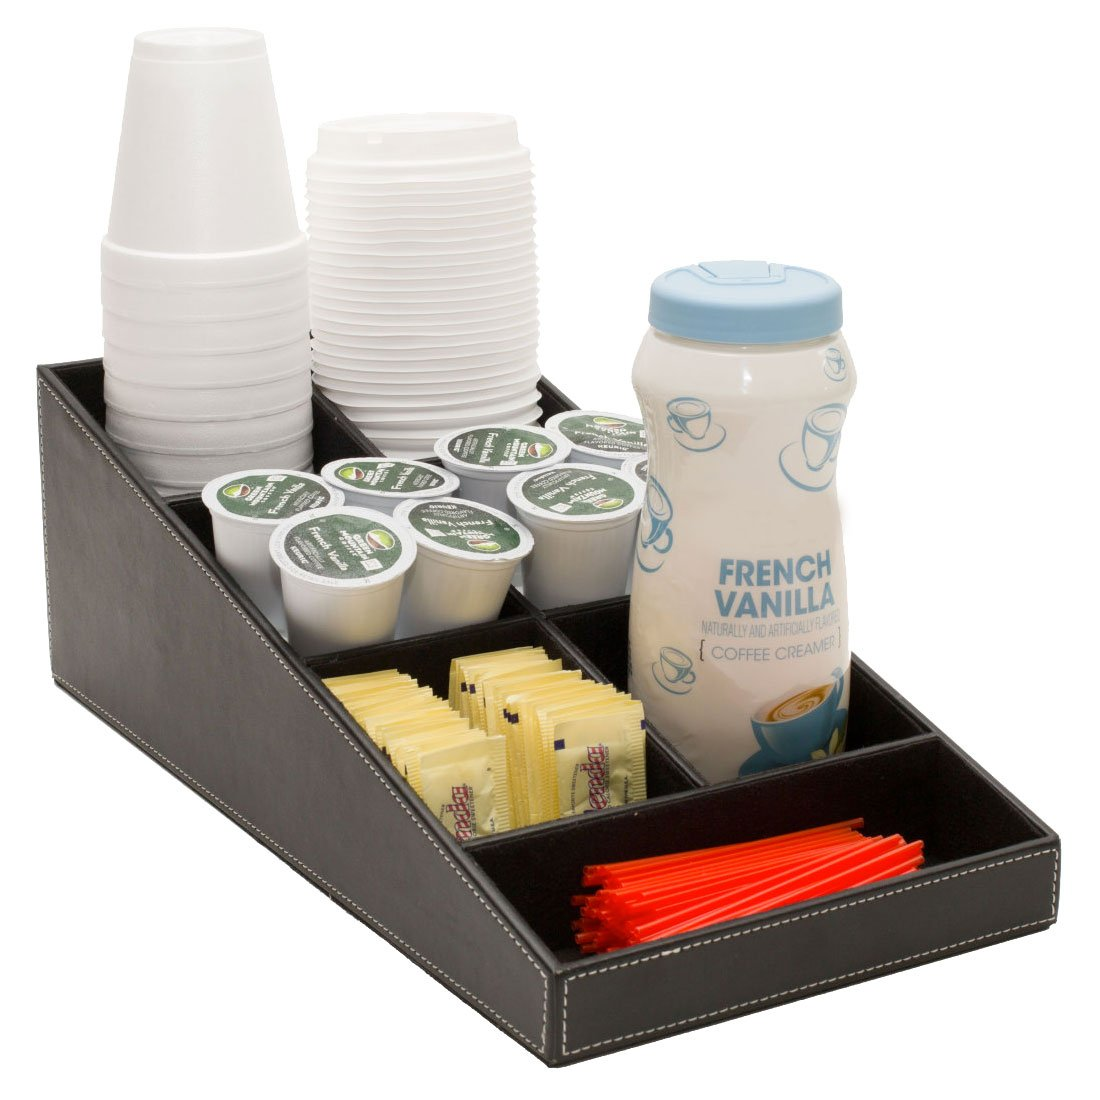 G.U.S. 1-Piece Coffee & Tea Condiment and Accessories Organizer with 7 Compartments for Office Breakroom or Home Kitchen. Decorative Black Leatherette OFC30050BKKR